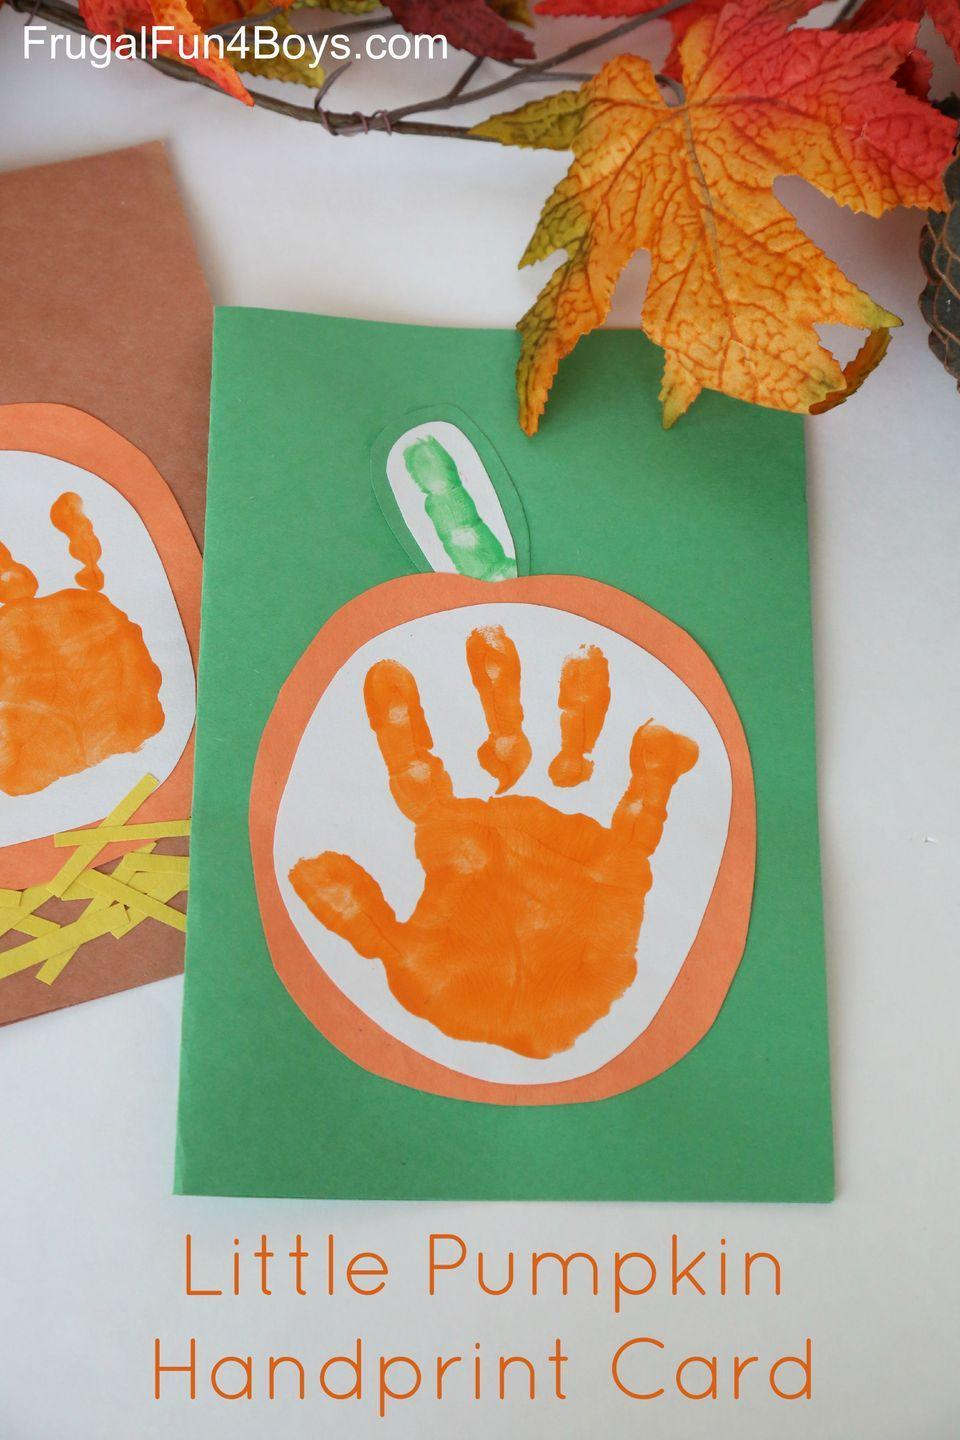 """<p>Far-away family will love this adorable greeting card. Use tiny hands to stamp out pumpkins (or red apples), and have kids write a personalized message. </p><p><em><a href=""""http://frugalfun4boys.com/2015/09/13/your-little-pumpkin-handprint-card-for-kids-to-make/"""" rel=""""nofollow noopener"""" target=""""_blank"""" data-ylk=""""slk:Get the tutorial at Frugal Fun for Boys and Girls »"""" class=""""link rapid-noclick-resp"""">Get the tutorial at Frugal Fun for Boys and Girls »</a></em> </p>"""